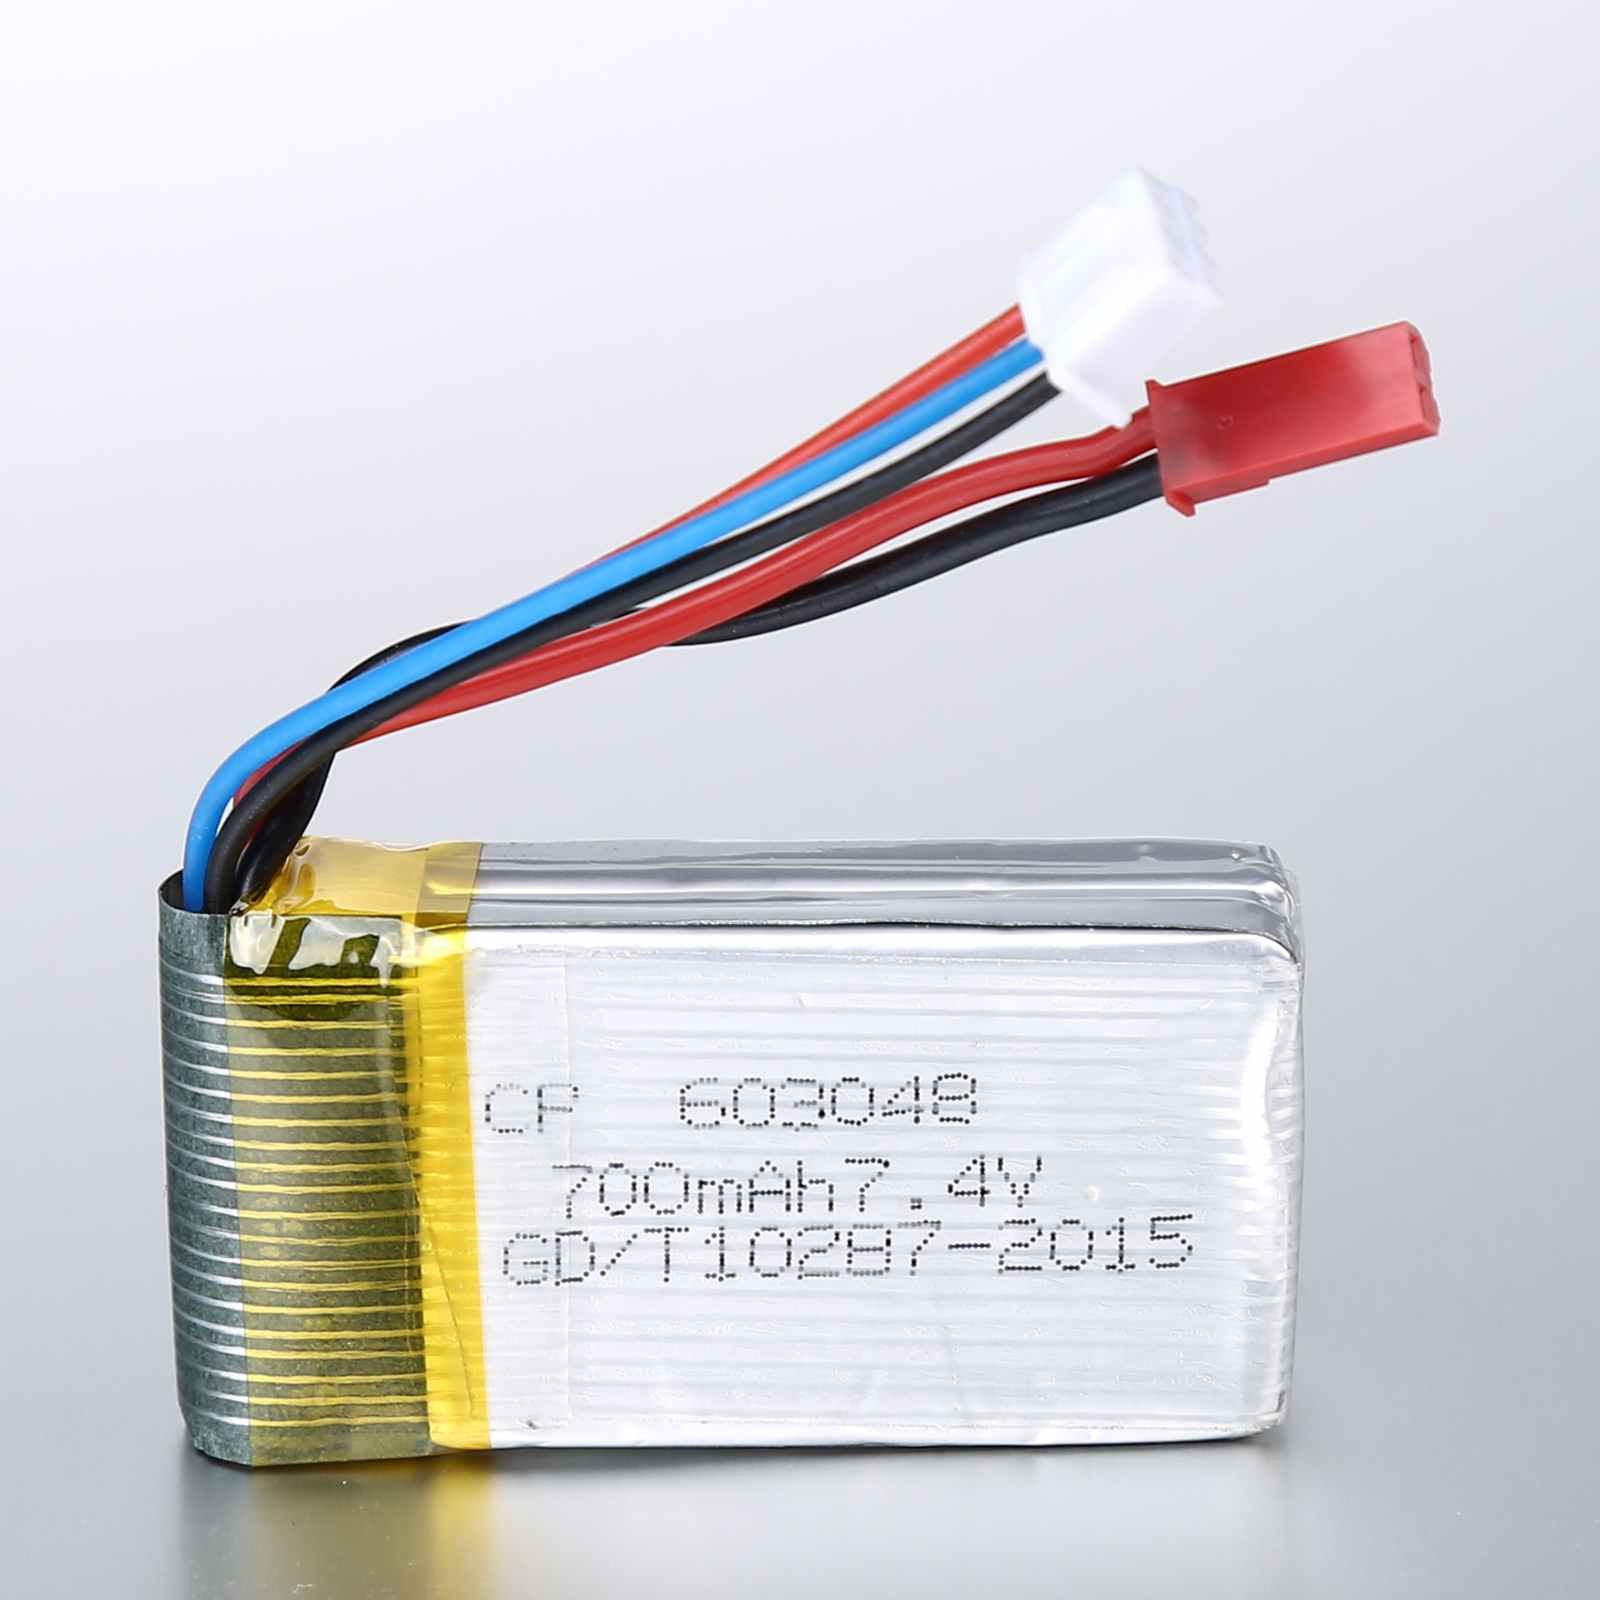 High Quality Lipo Battery Replacement 7.4V 700mAh Lipo Battery Spare Parts for MJX X600 RC Quadcopter Helicopter